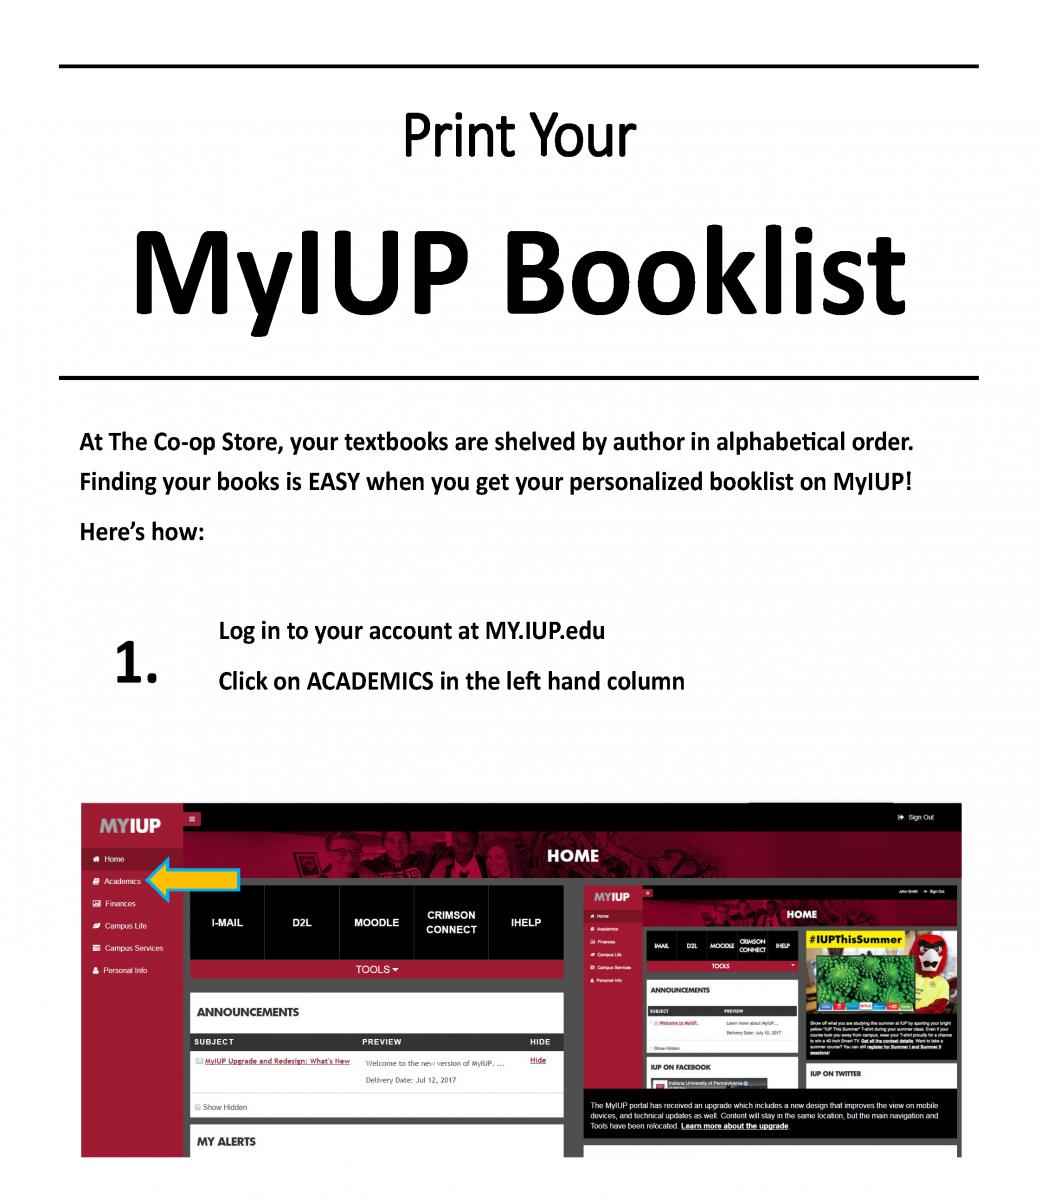 Print Your My IUP Booklist p1